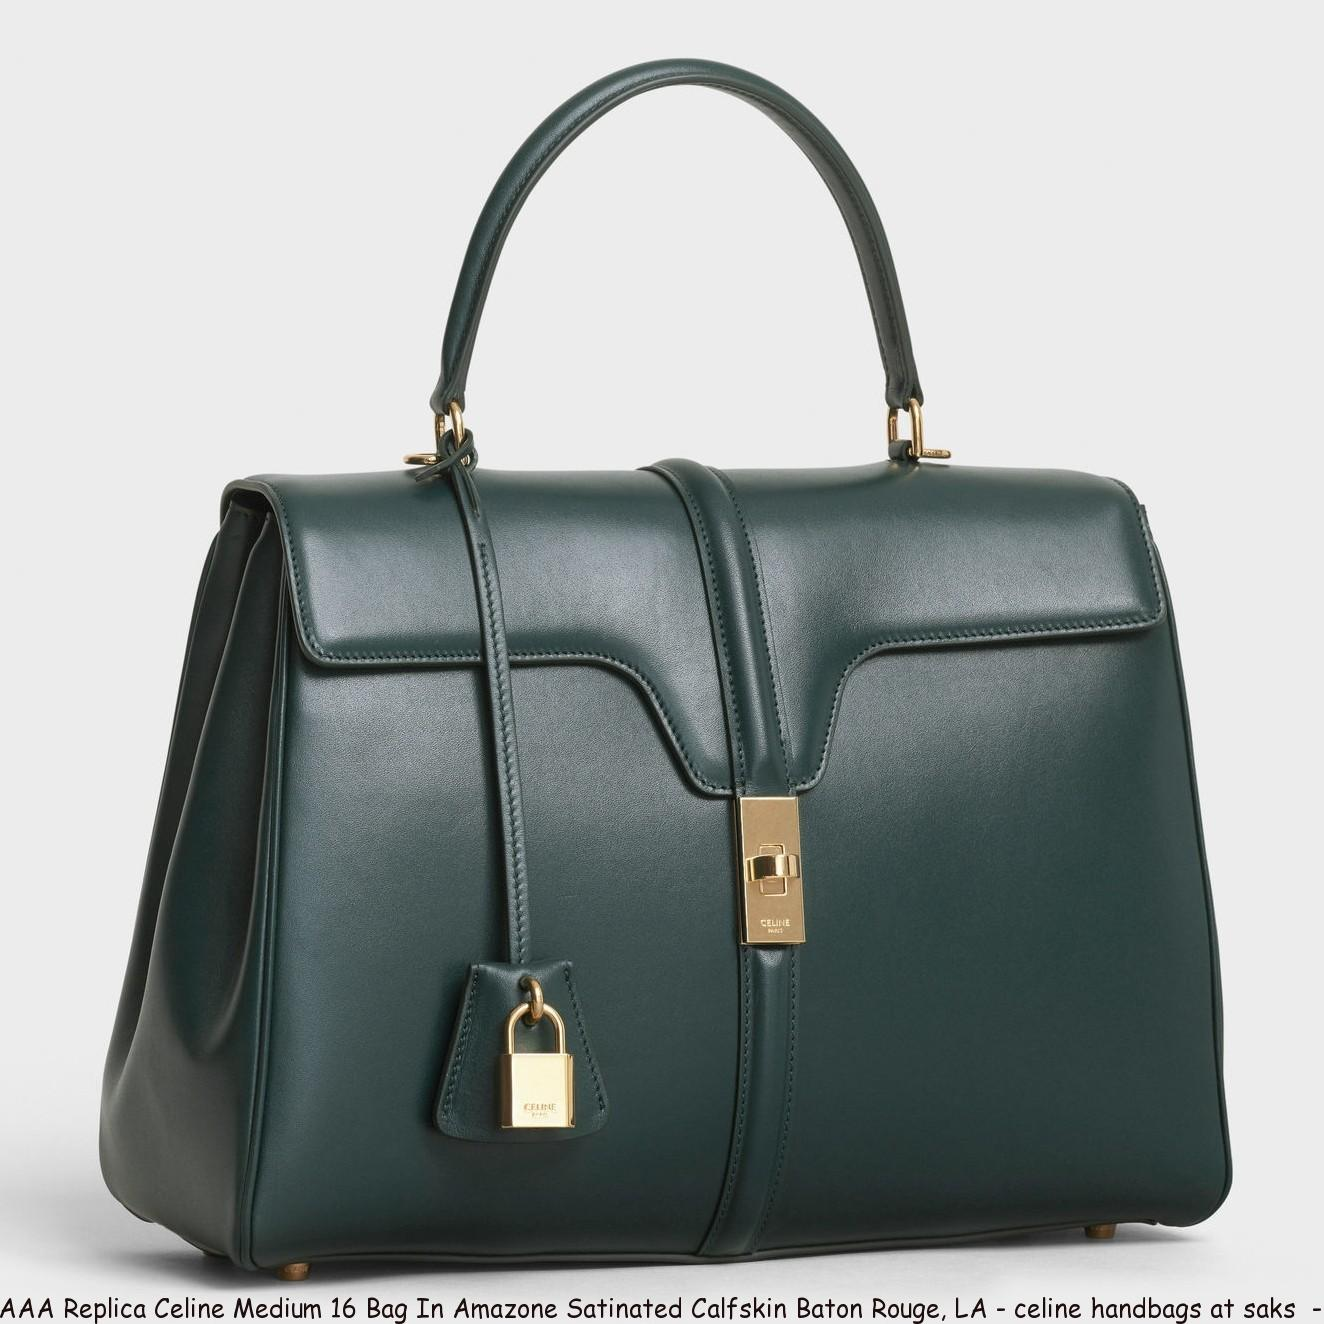 f6a4e42c295 AAA Replica Celine Medium 16 Bag In Amazone Satinated Calfskin Baton ...